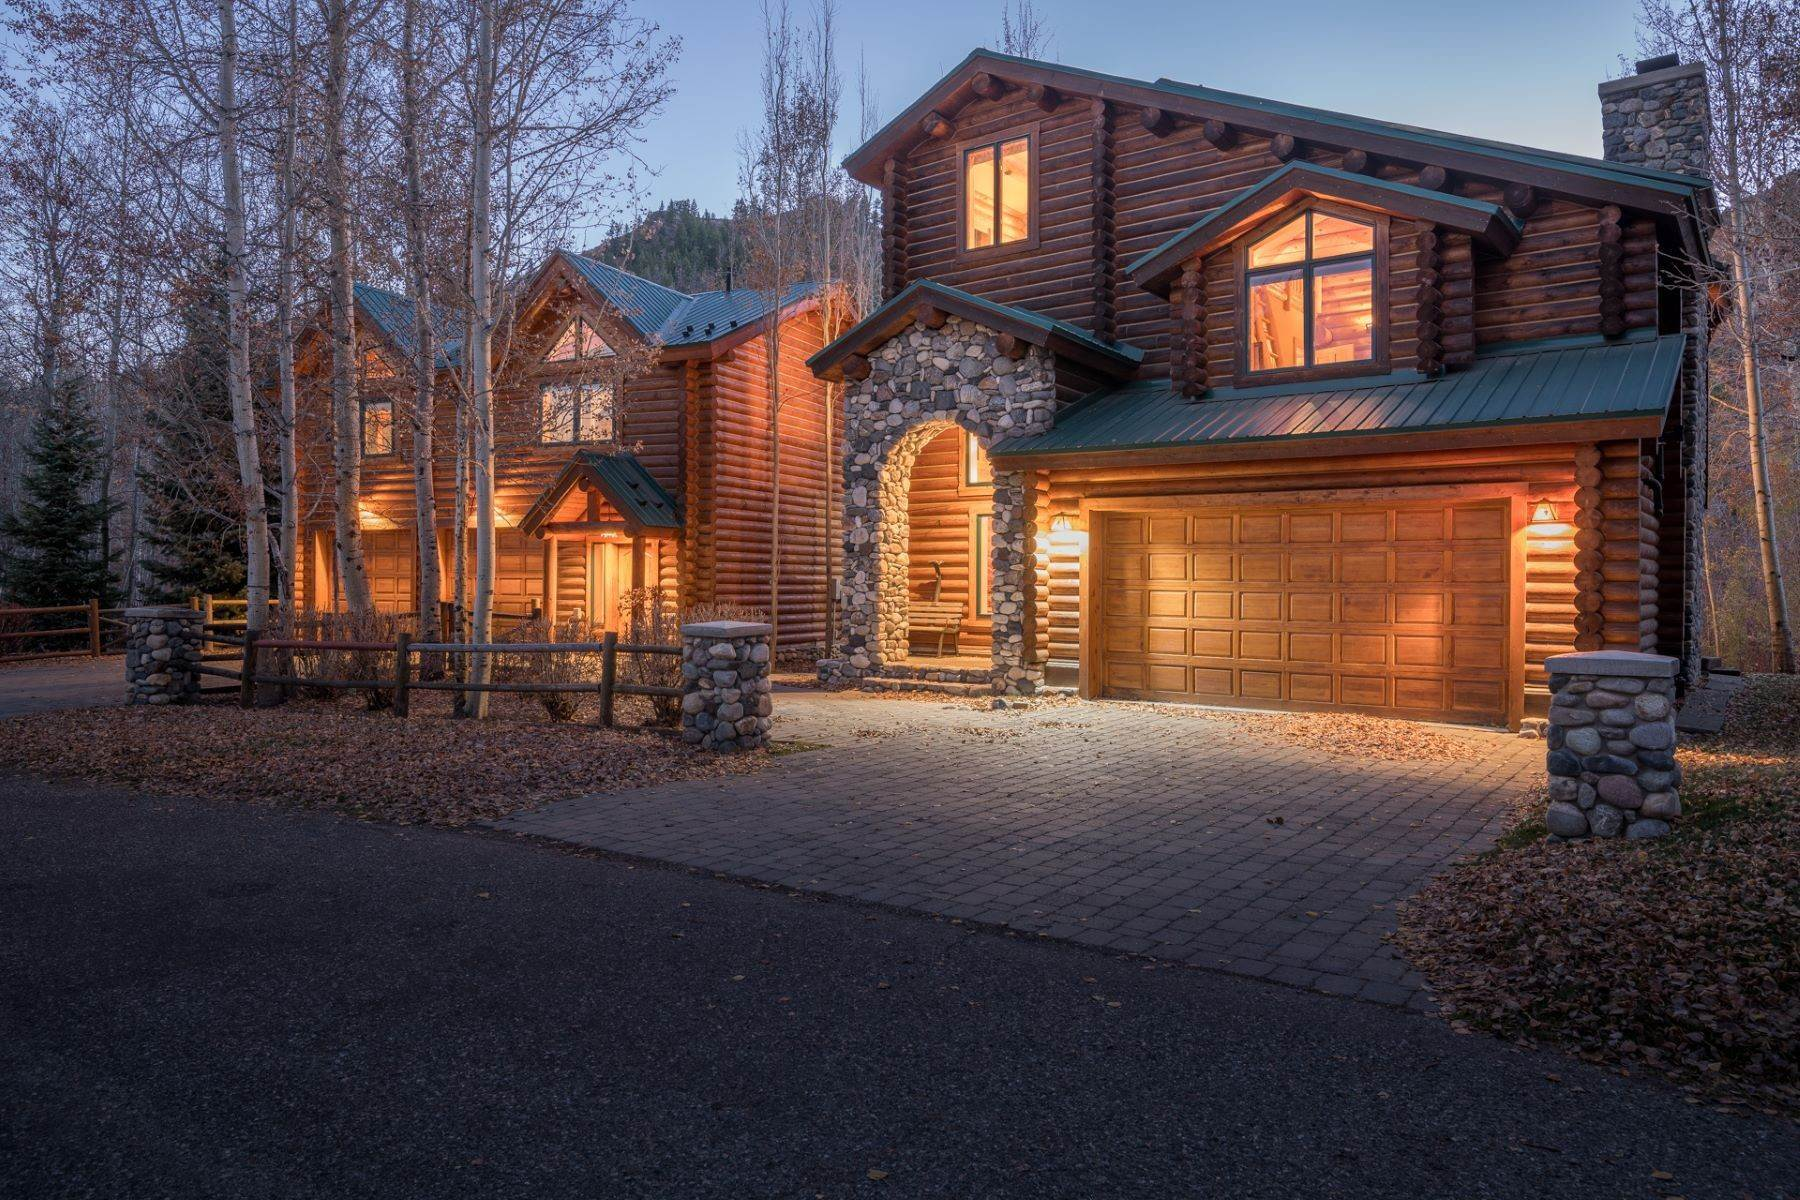 Single Family Homes for Sale at Rarely Available and Highly Desirable Riverfront Home 217 Eagle Creek Loop Ketchum, Idaho 83340